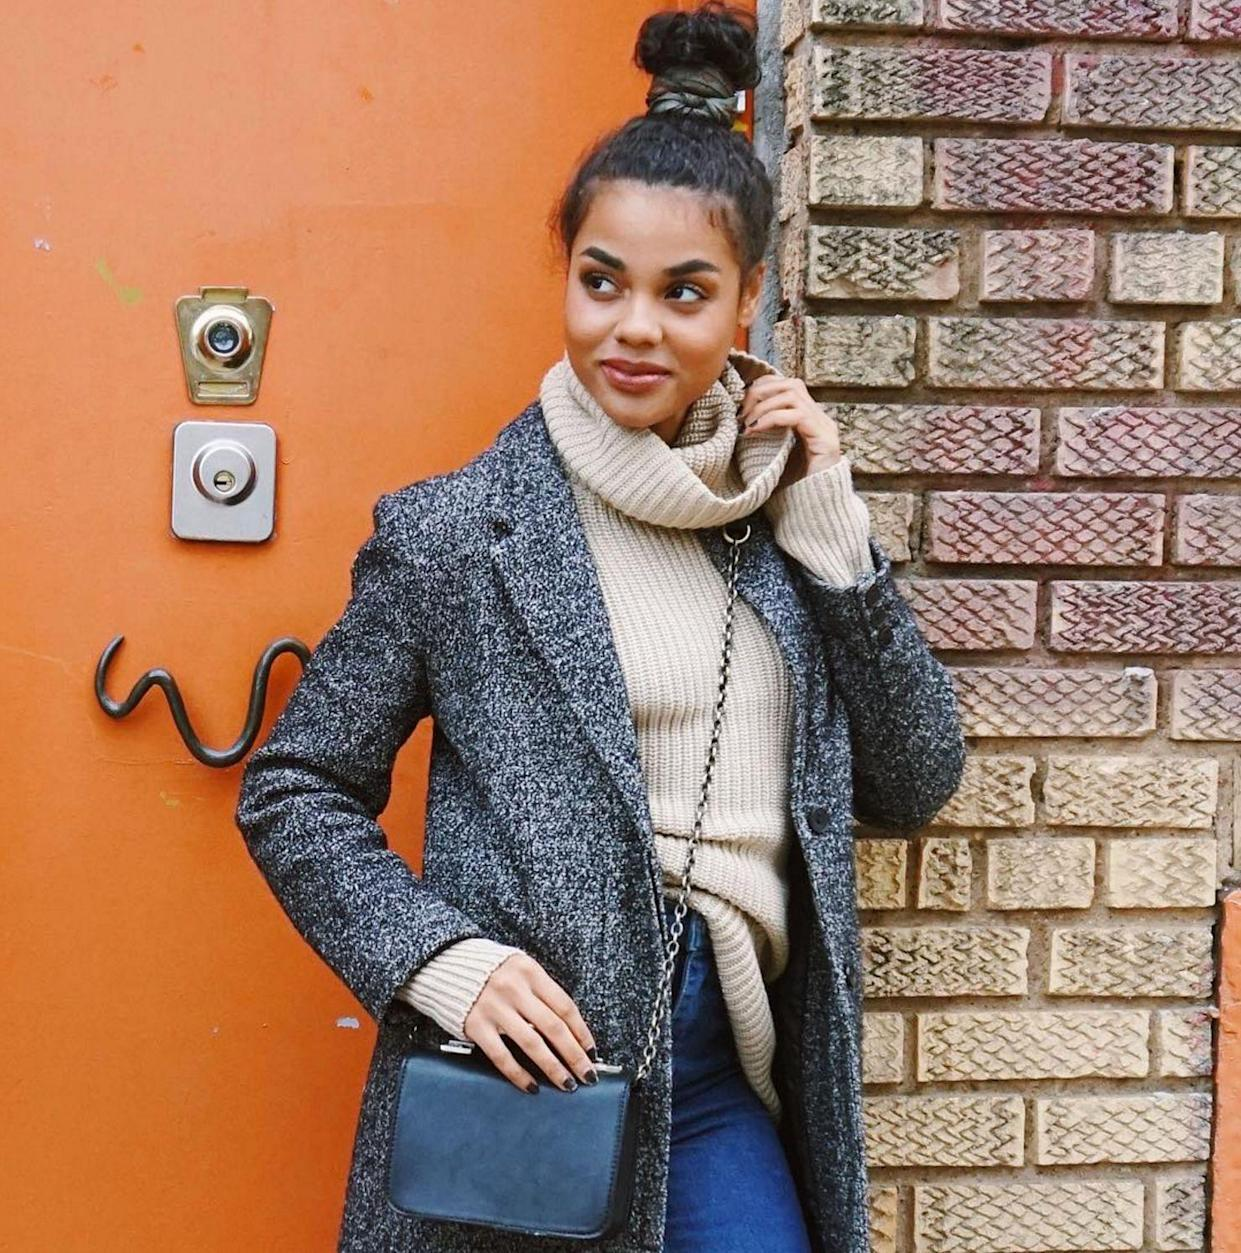 """<p><strong>The '90s Topknot</strong></p> <p>(Too) many men like to sport a topknot and we're pretty certain it's not a good look. We're happy to leave the man bun firmly in 2015. On a woman, however, a topknot is elegant and easy. A few days ago wardrobe stylist and blogger <a href=""""https://www.instagram.com/ericalave/"""" rel=""""nofollow noopener"""" target=""""_blank"""" data-ylk=""""slk:Erica Lavelanet"""" class=""""link rapid-noclick-resp"""">Erica Lavelanet</a> showed off the perfect high bun. If only our baby hairs were so well behaved...</p> <span class=""""copyright"""">Photo: via @ericalave.</span>"""